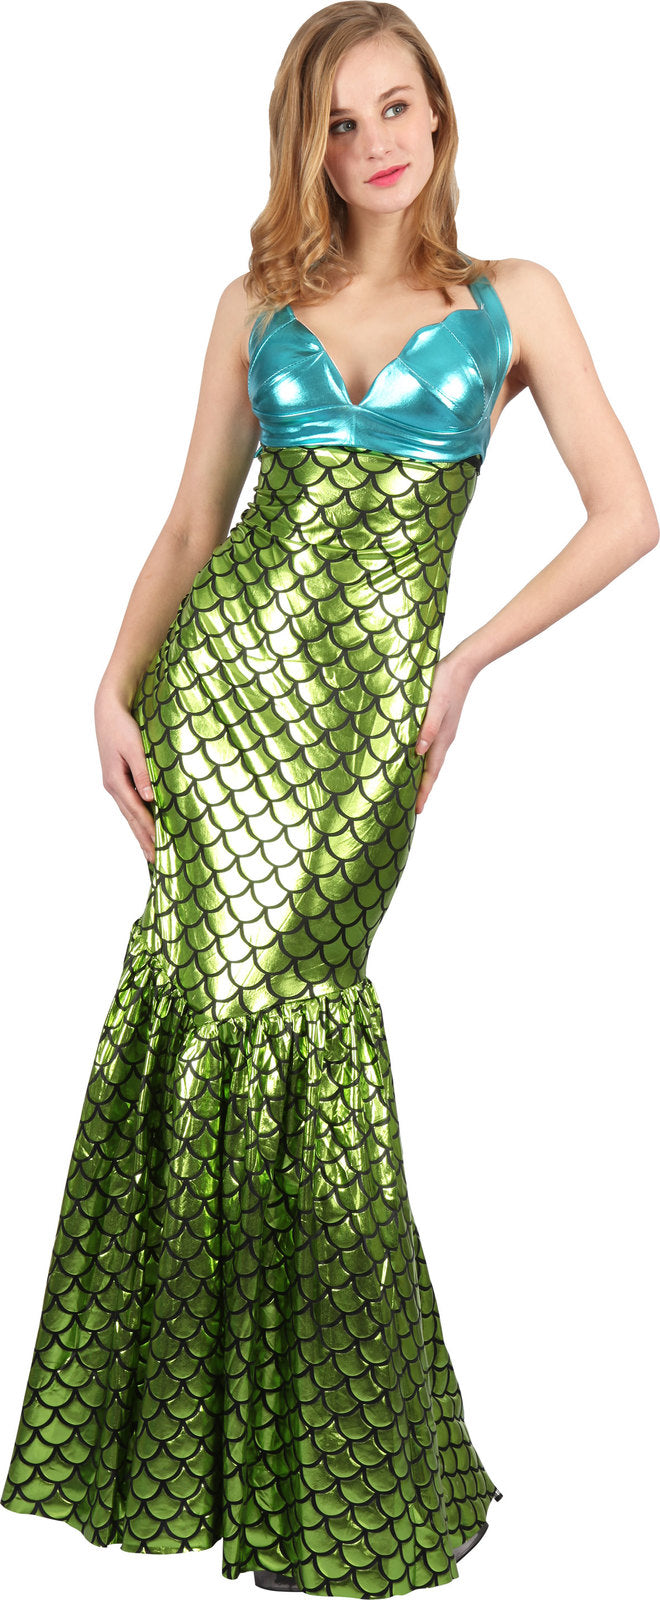 Mermaid Costume - Buy